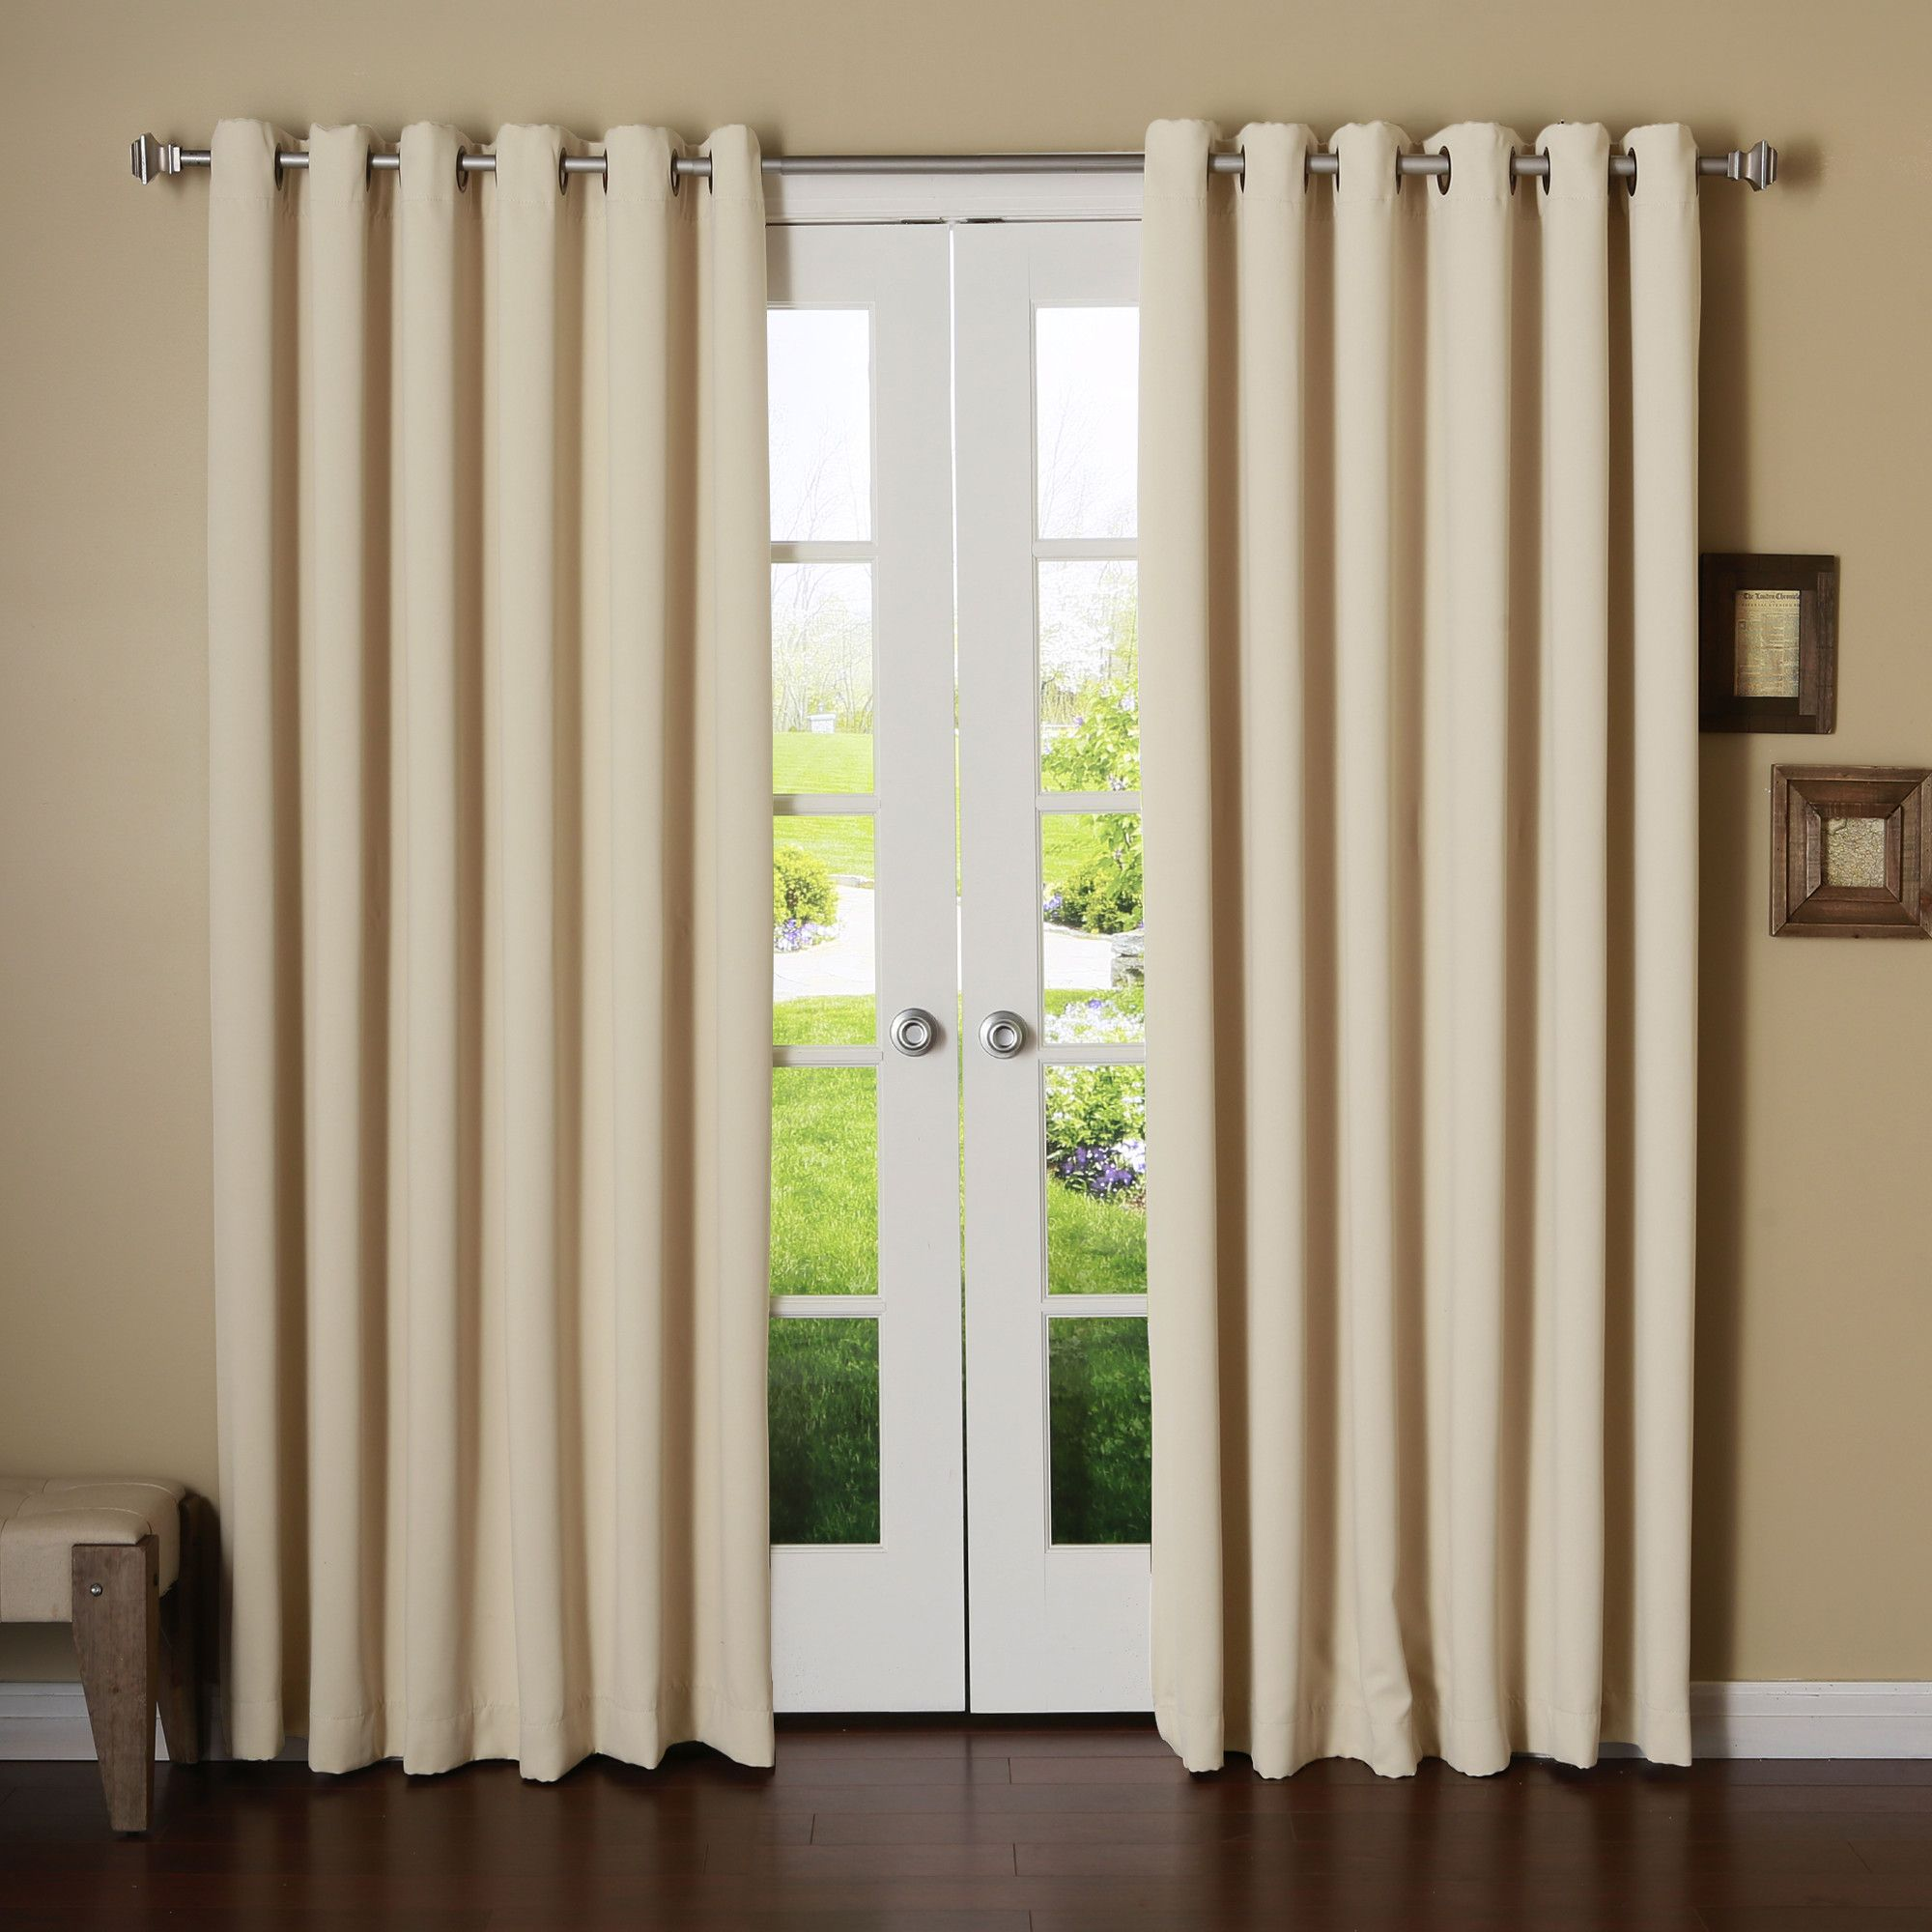 Patio door curtains grommet top - 17 Best Images About Living Room On Pinterest Extra Long Shower Curtain Naples And Extra Long Curtain Rods